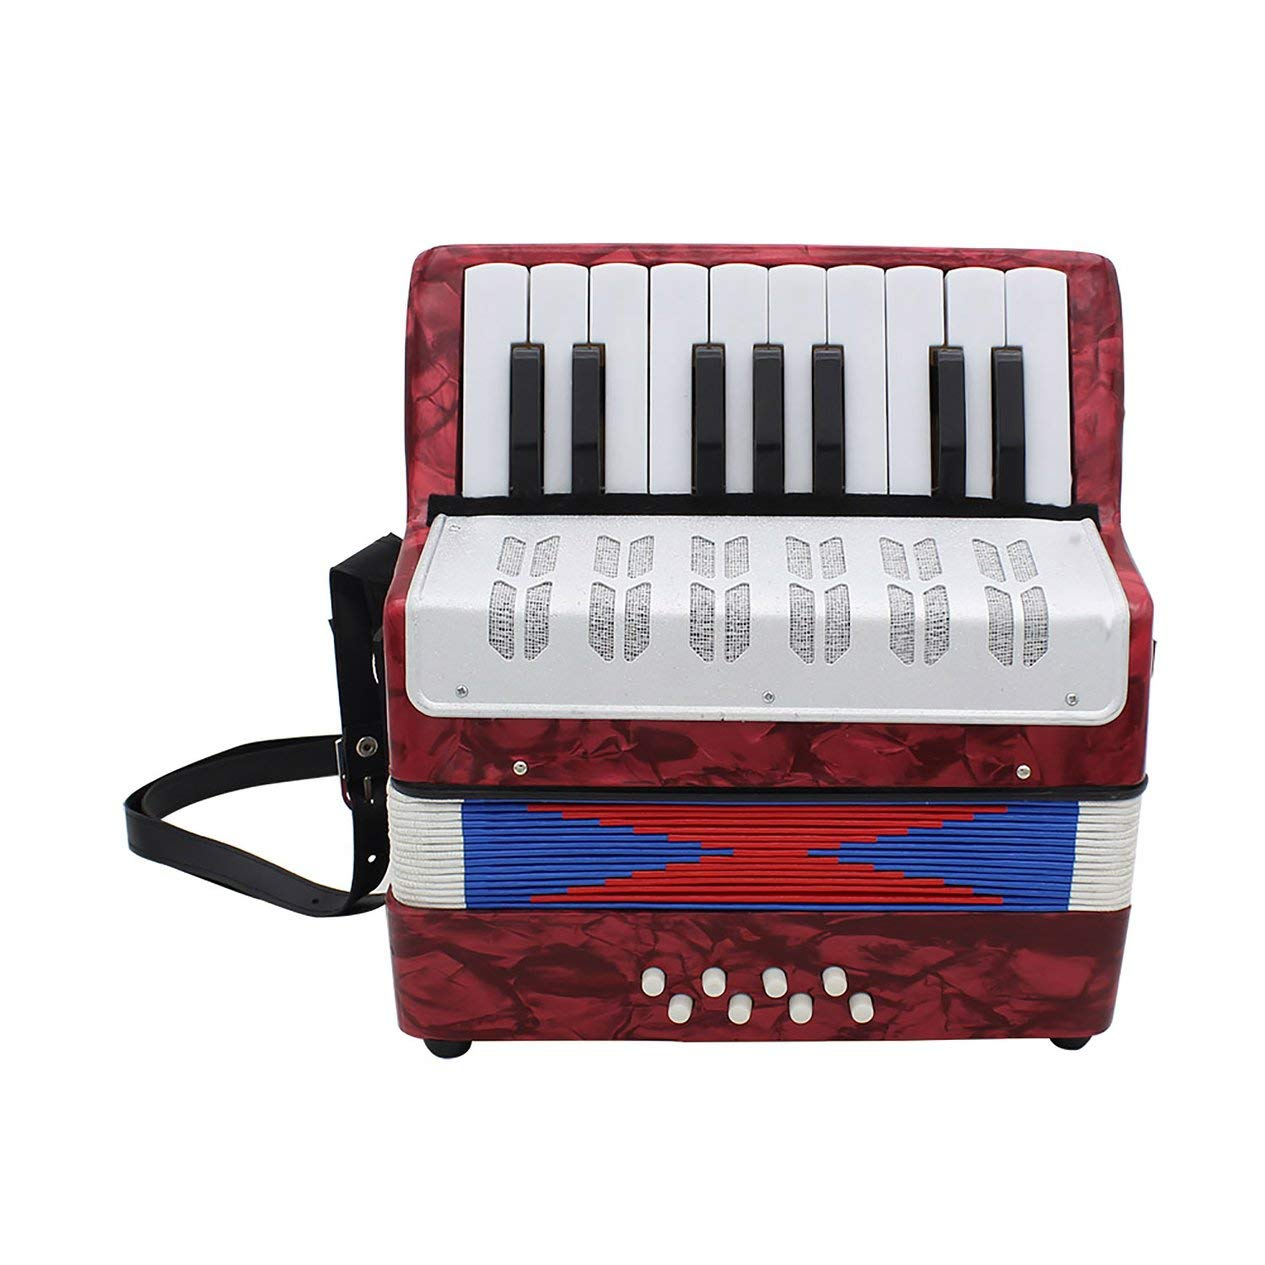 17-Key 8 Bass Accordion Musical Toy for Educational Musical Instrument Simulation Learning Concertina Rhythm